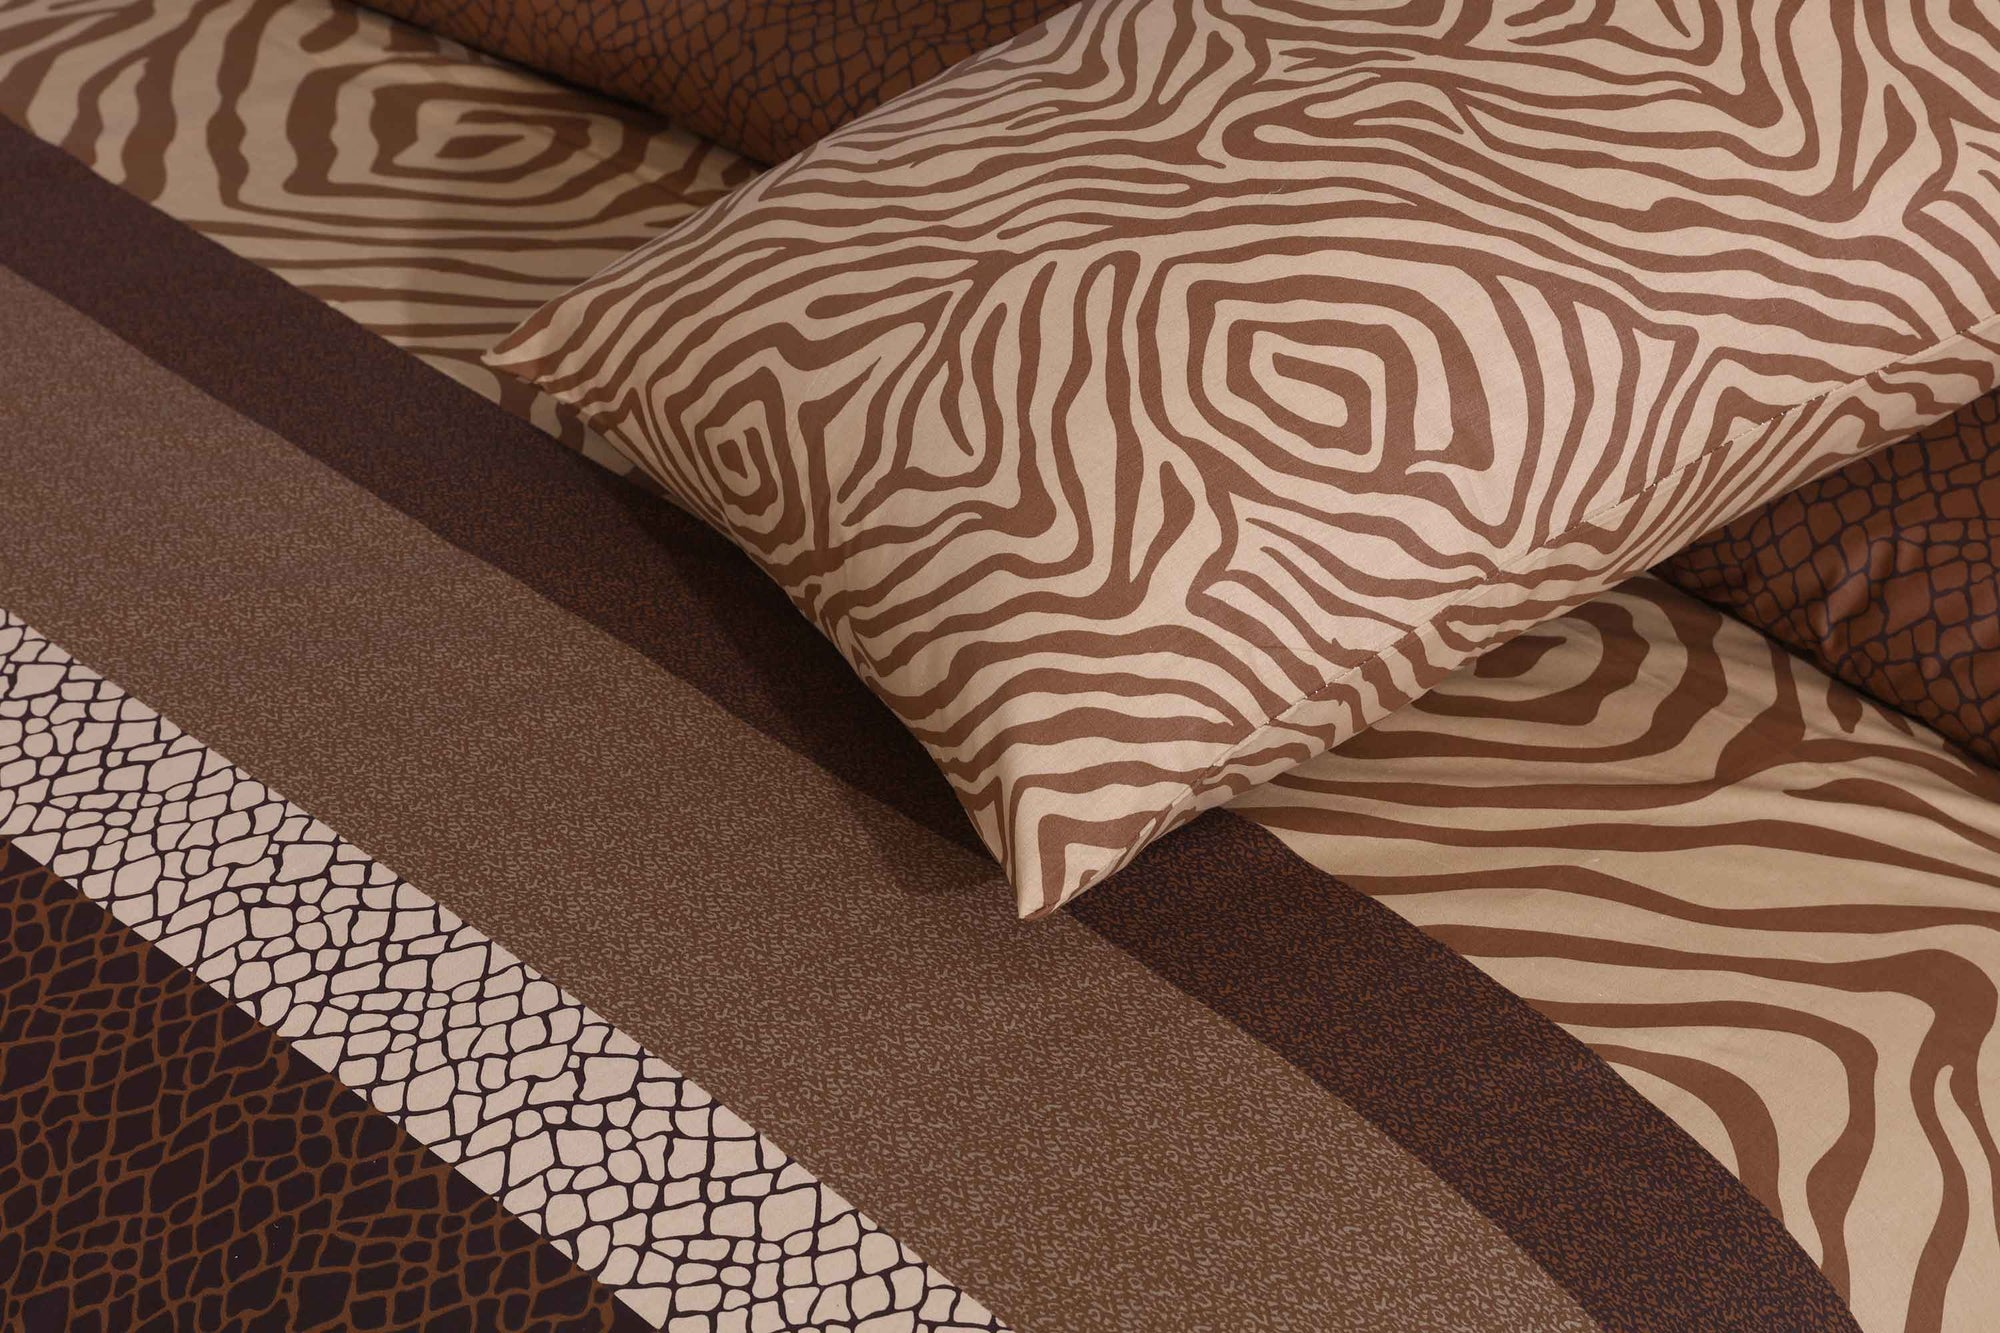 Grace Caramel Pattern D102 - Cotton pc king size Bedsheet with 2 pillow covers.